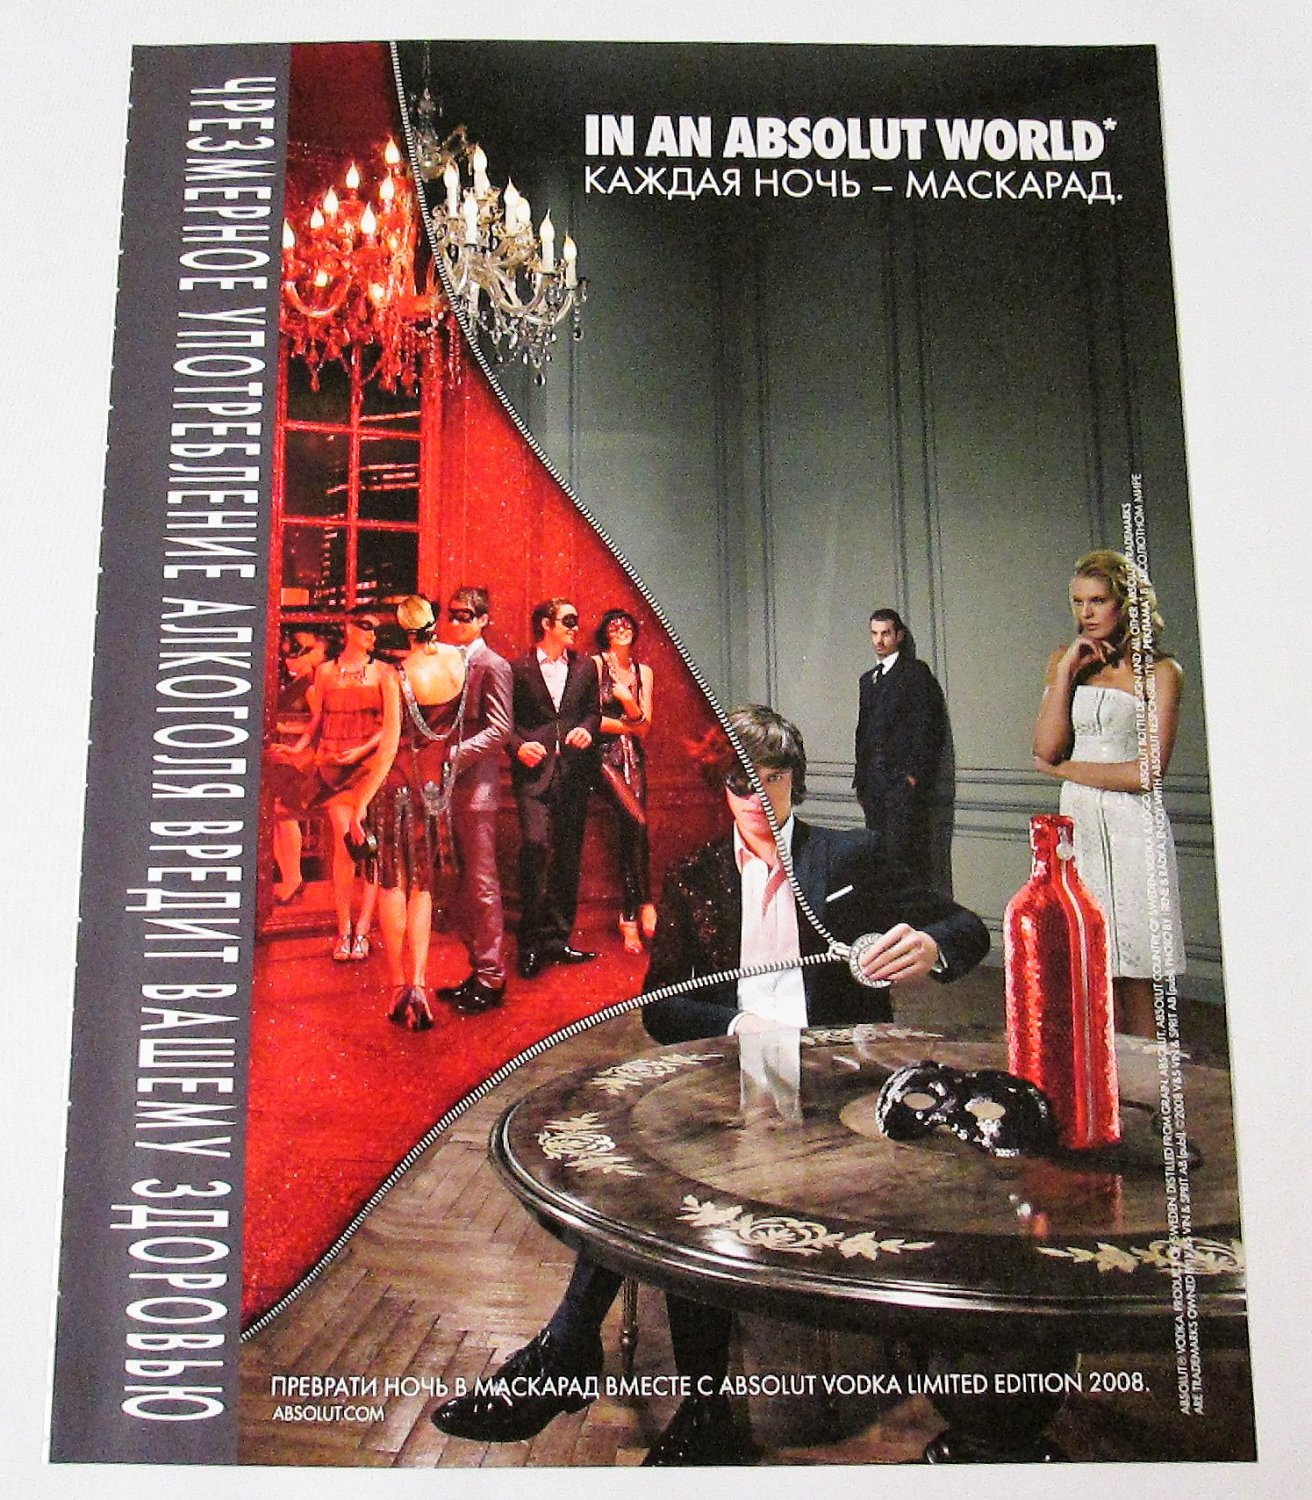 IN AN ABSOLUT WORLD Russian Masquerade Vodka Magazine Ad w/ Cyrillic Text